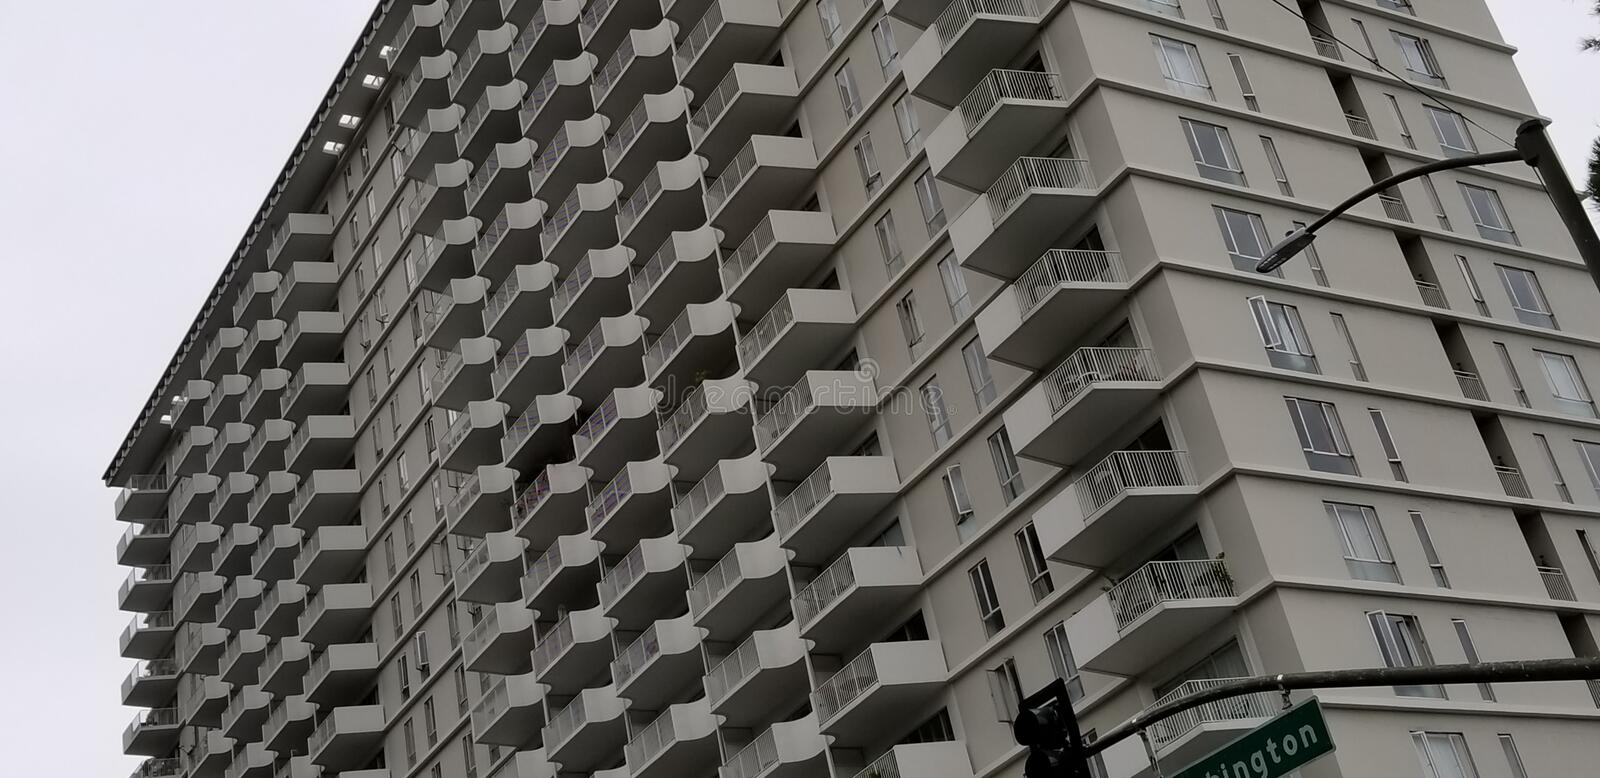 High Rise stock image